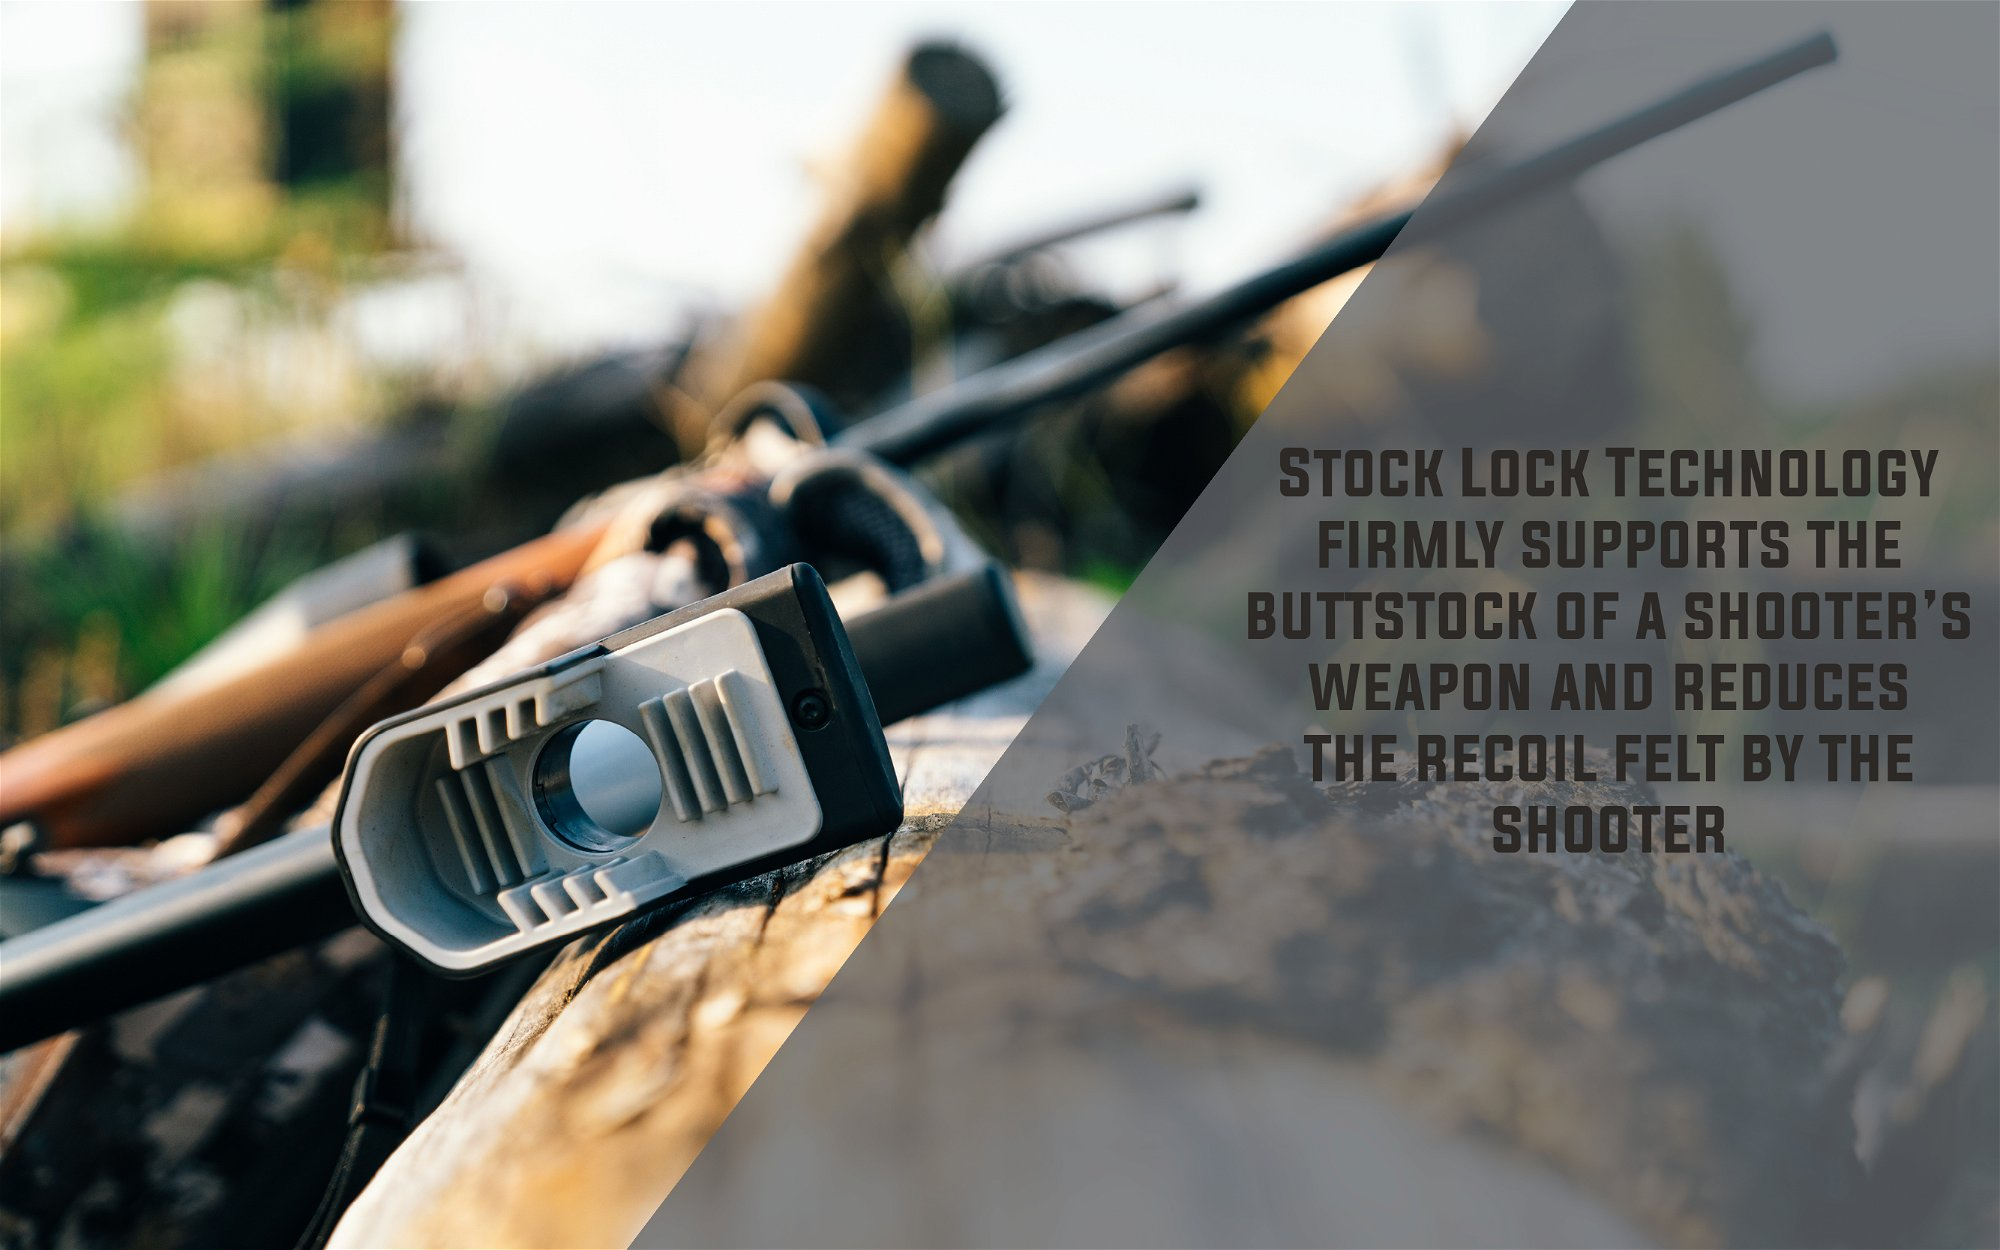 Stock lock technology firmly supports the buttstock of a shooter's weapon and reduces the recoil felt by the shooter.